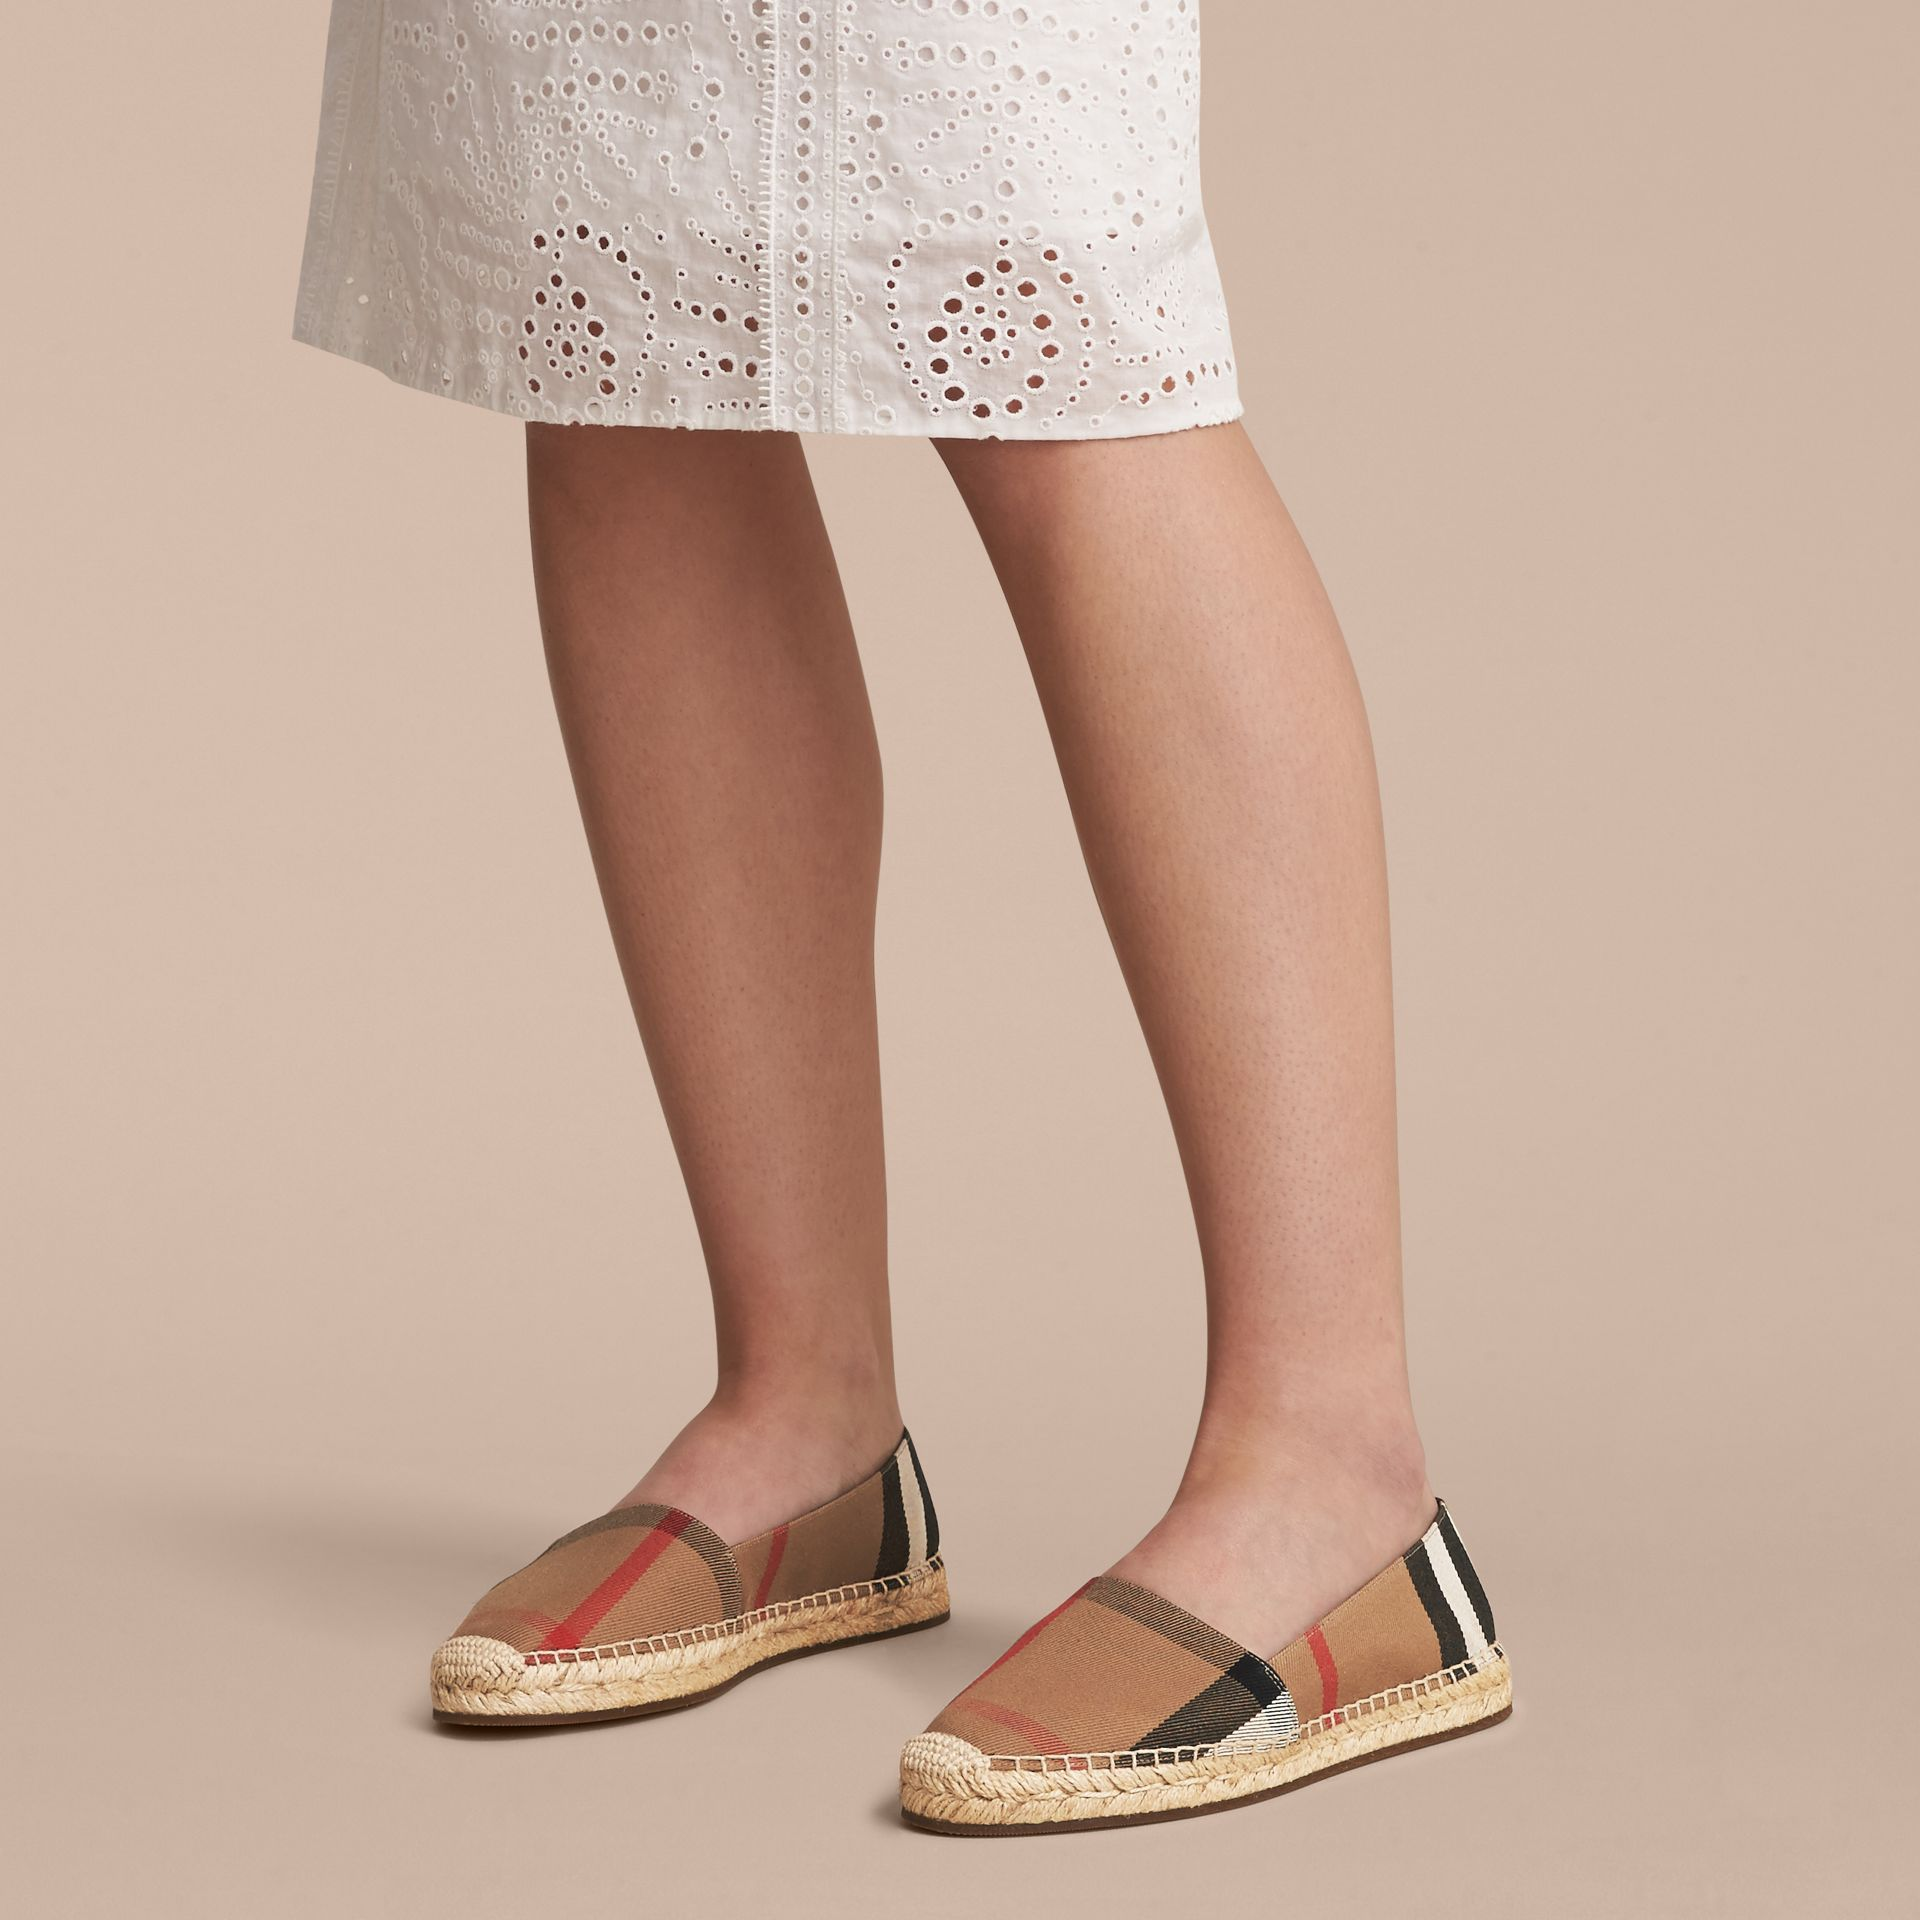 Leather Trim Canvas Check Espadrilles in Classic - Women | Burberry - gallery image 3